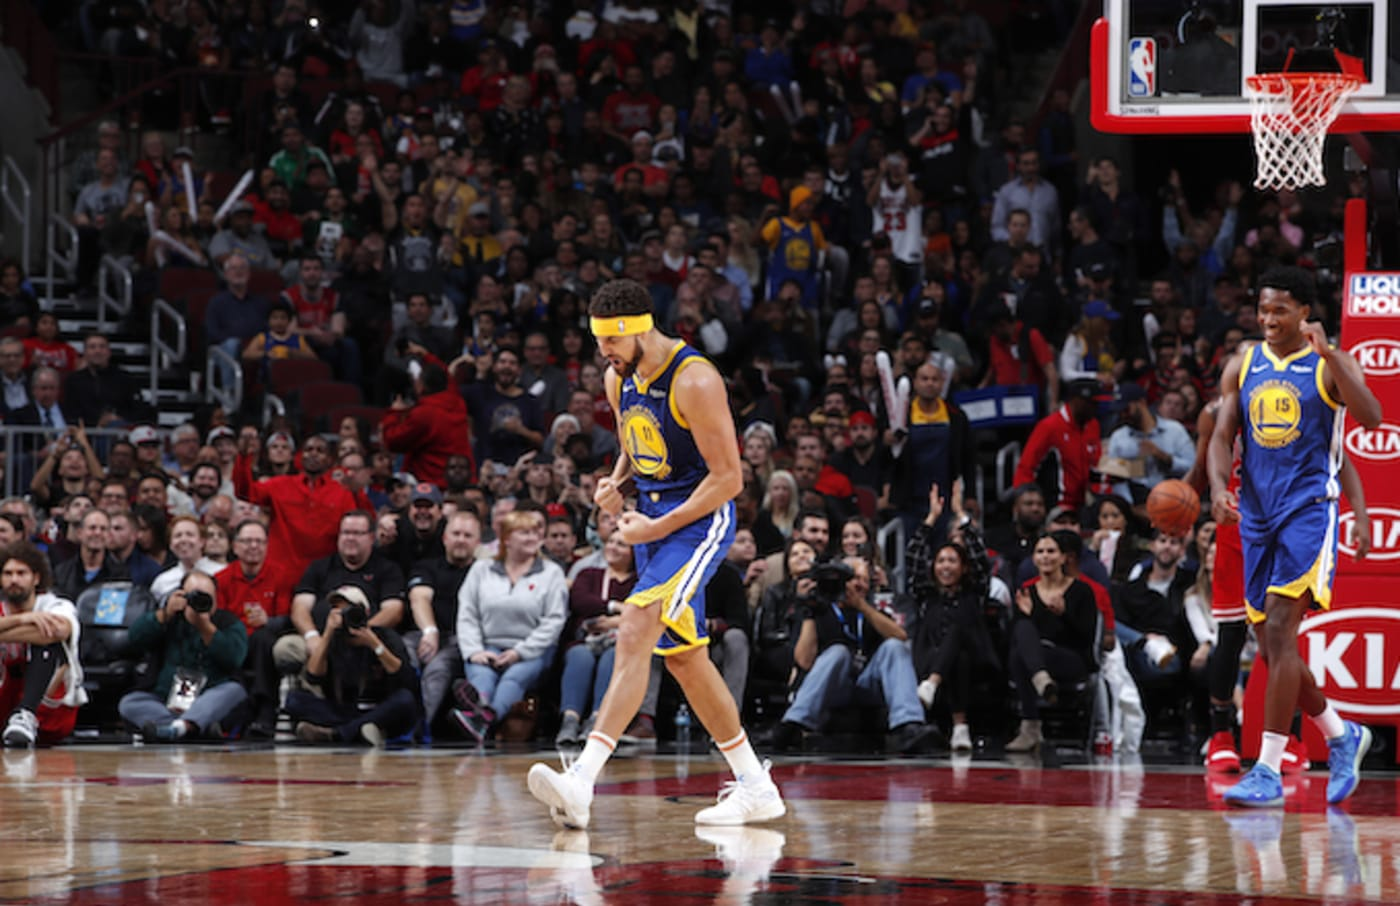 Klay Thompson #11 of the Golden State Warriors.